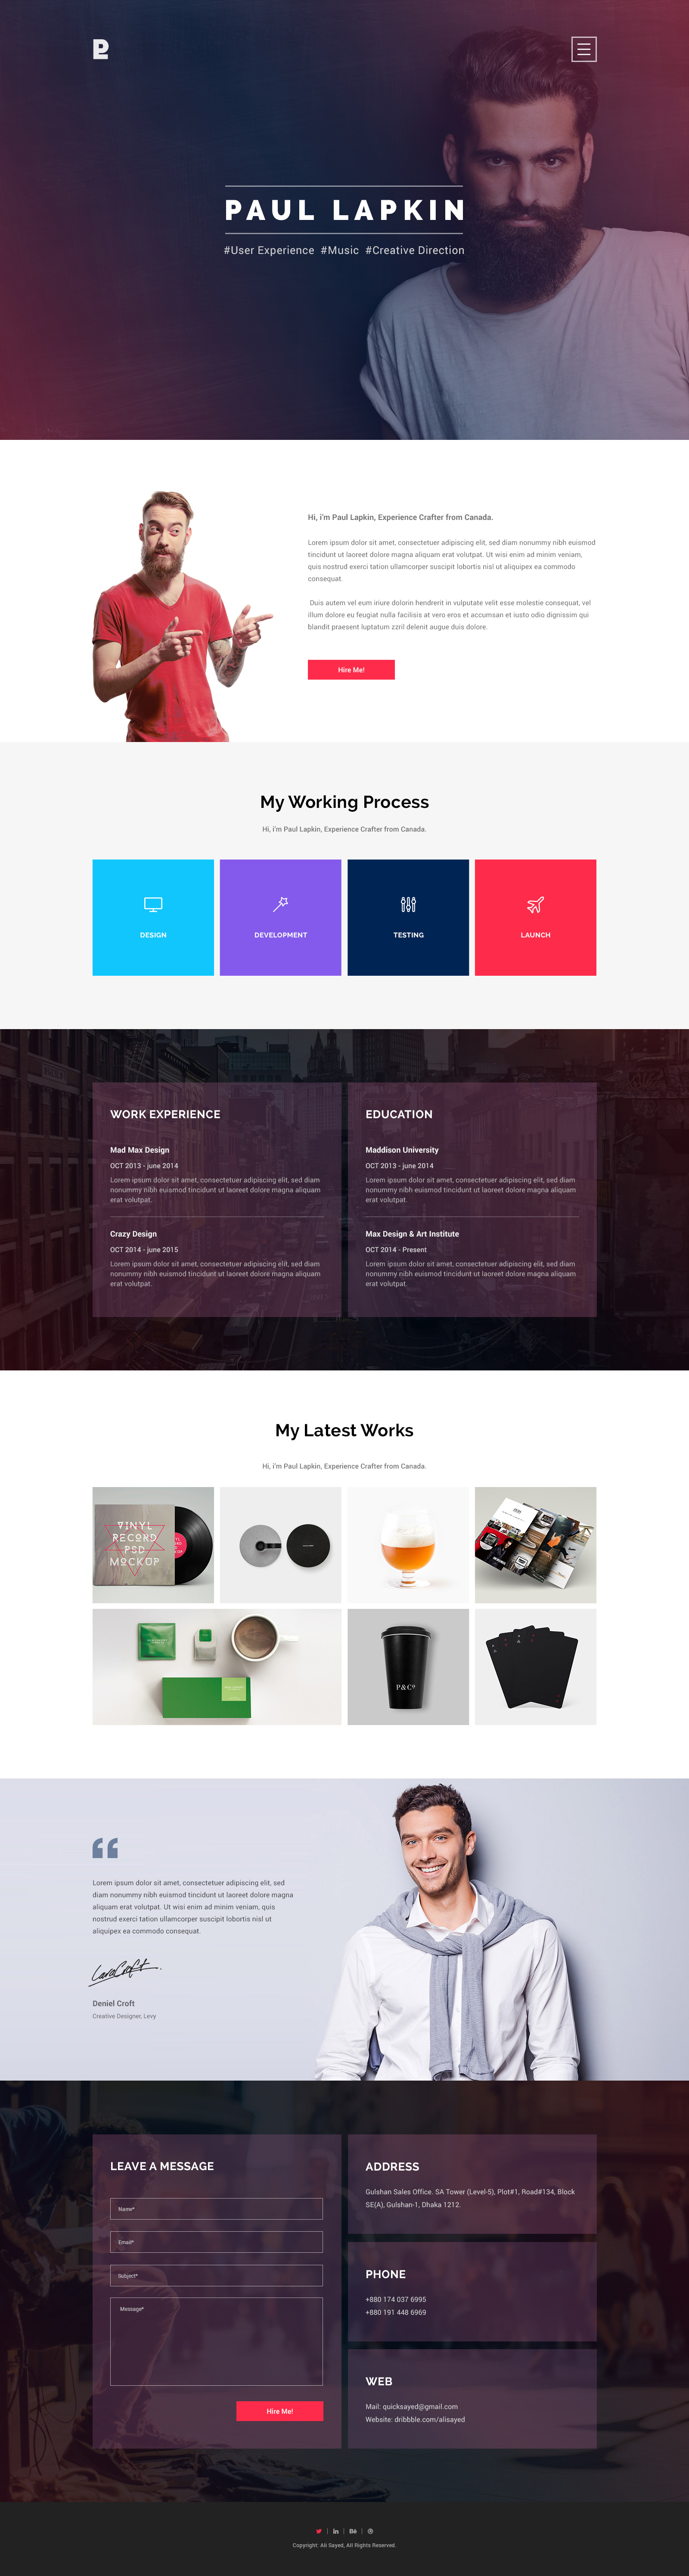 personal-site-free-psd